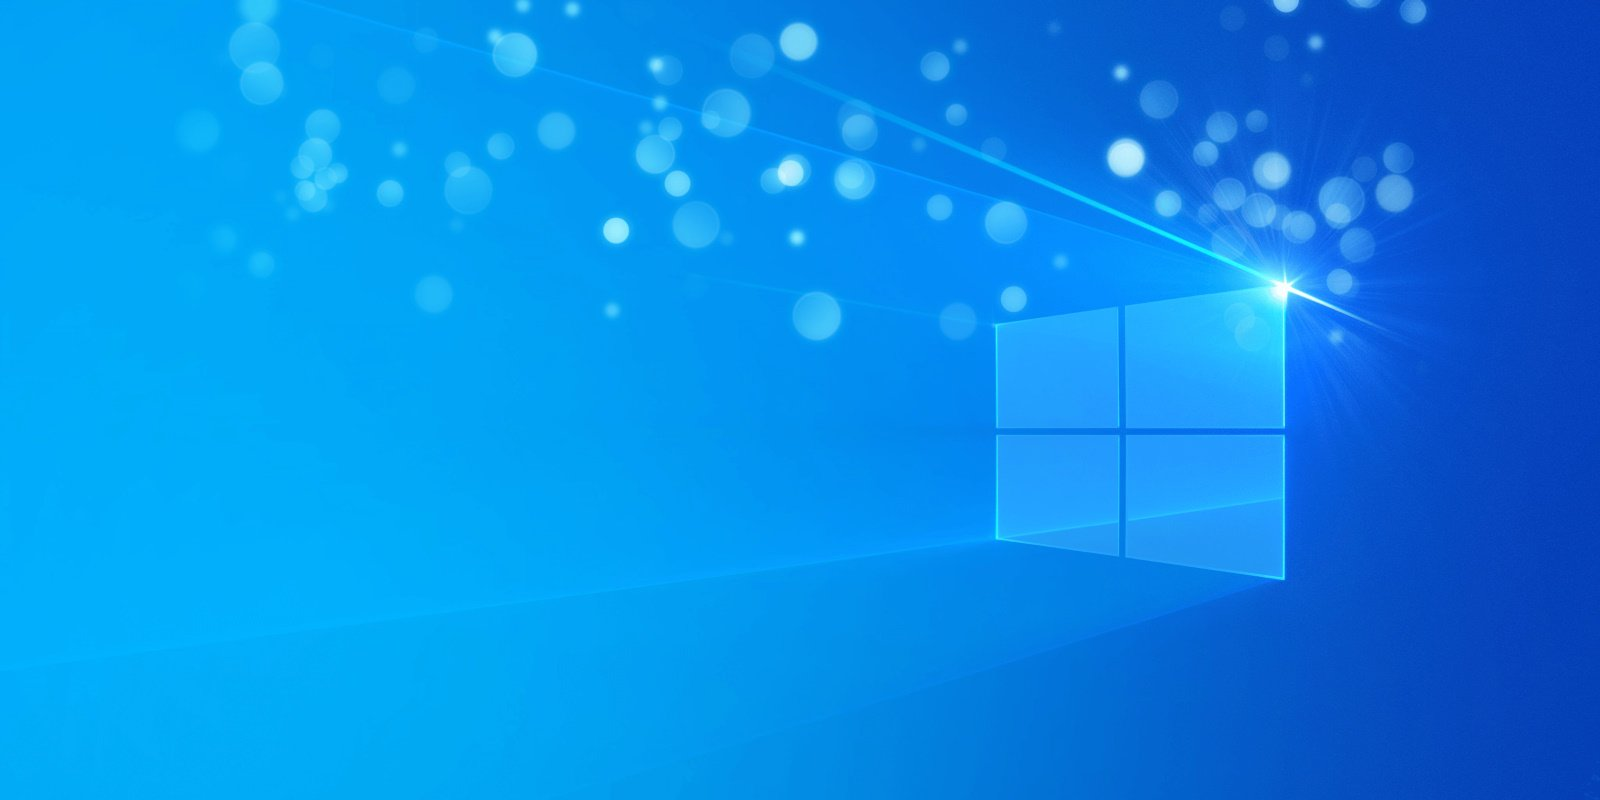 Microsoft to tailor Windows 10 setups based on how you use your PC